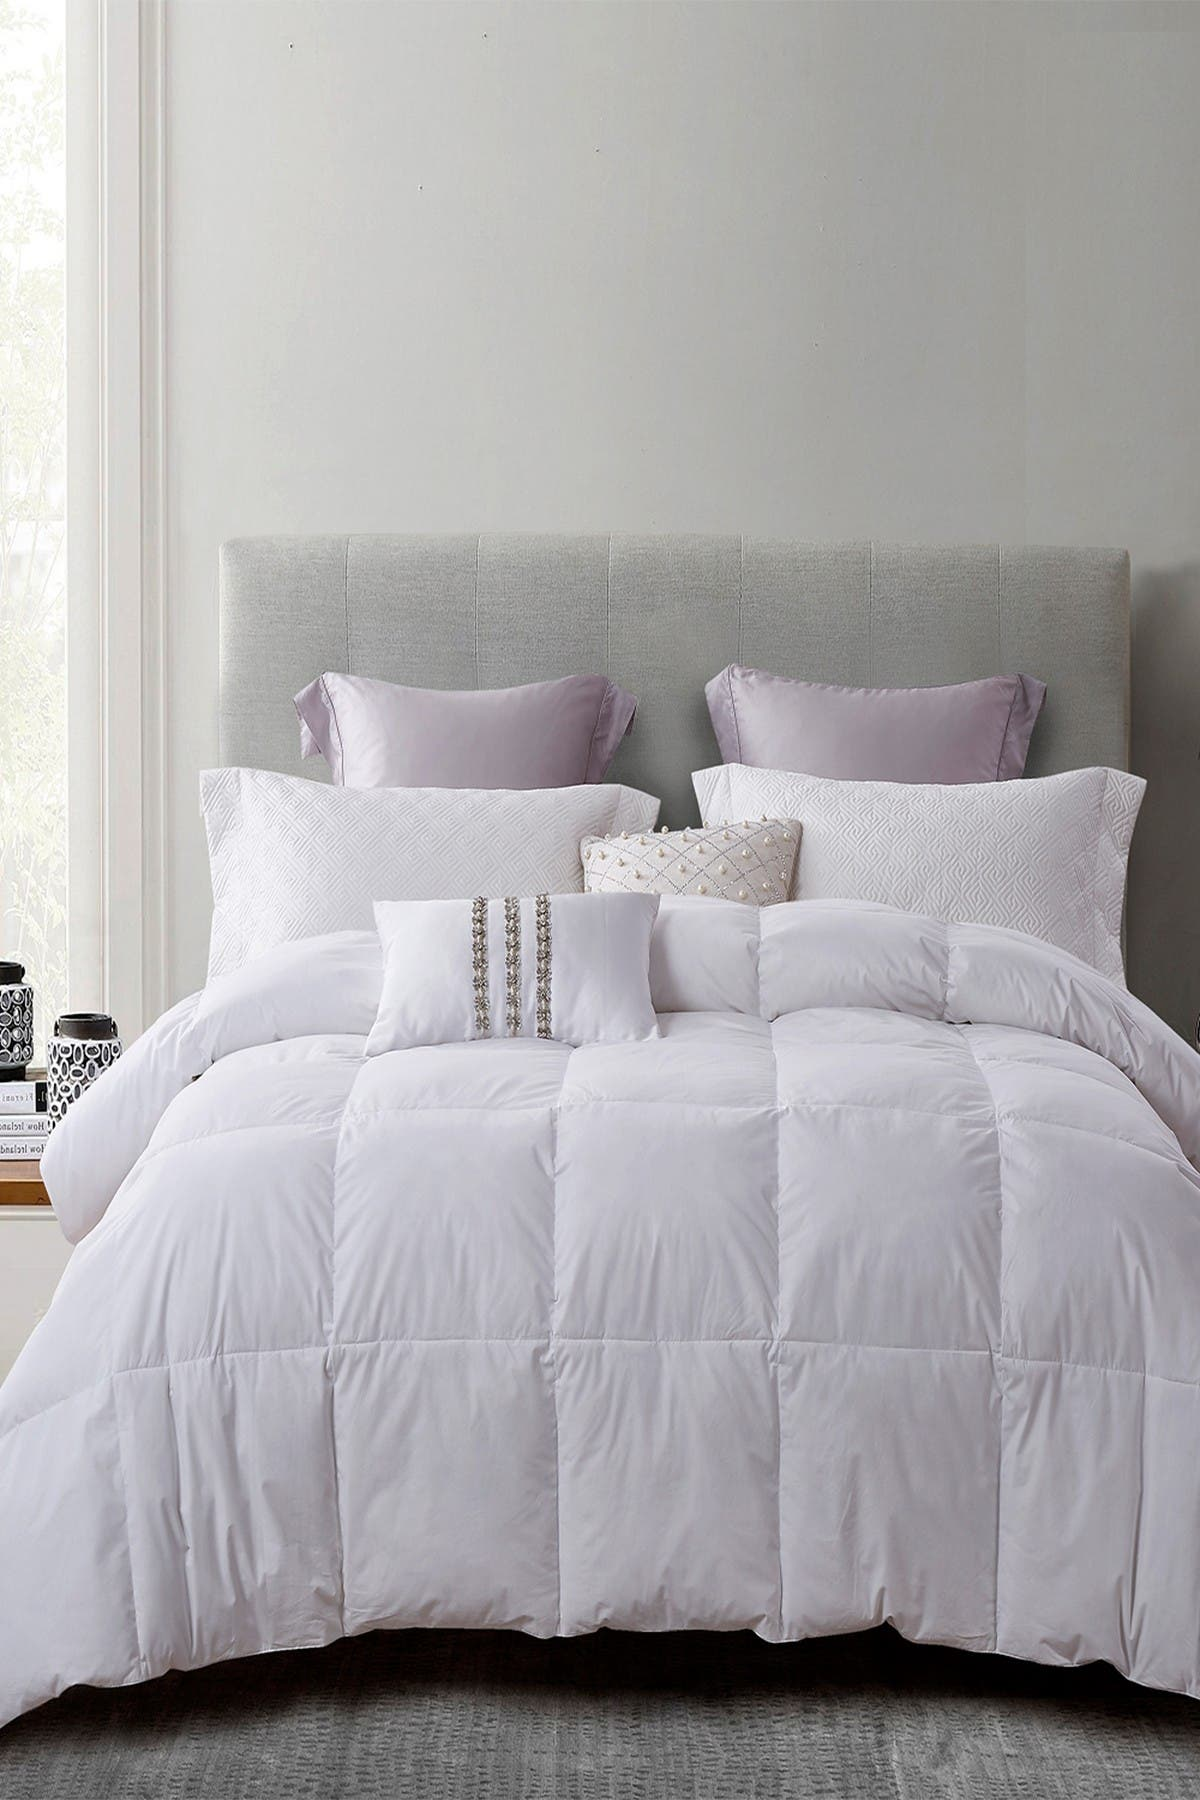 Image of Blue Ridge Home Fashions Martha Stewart 240 Thread Count 90/10 White Feather/ Down Fiber Comforter - Full/Queen